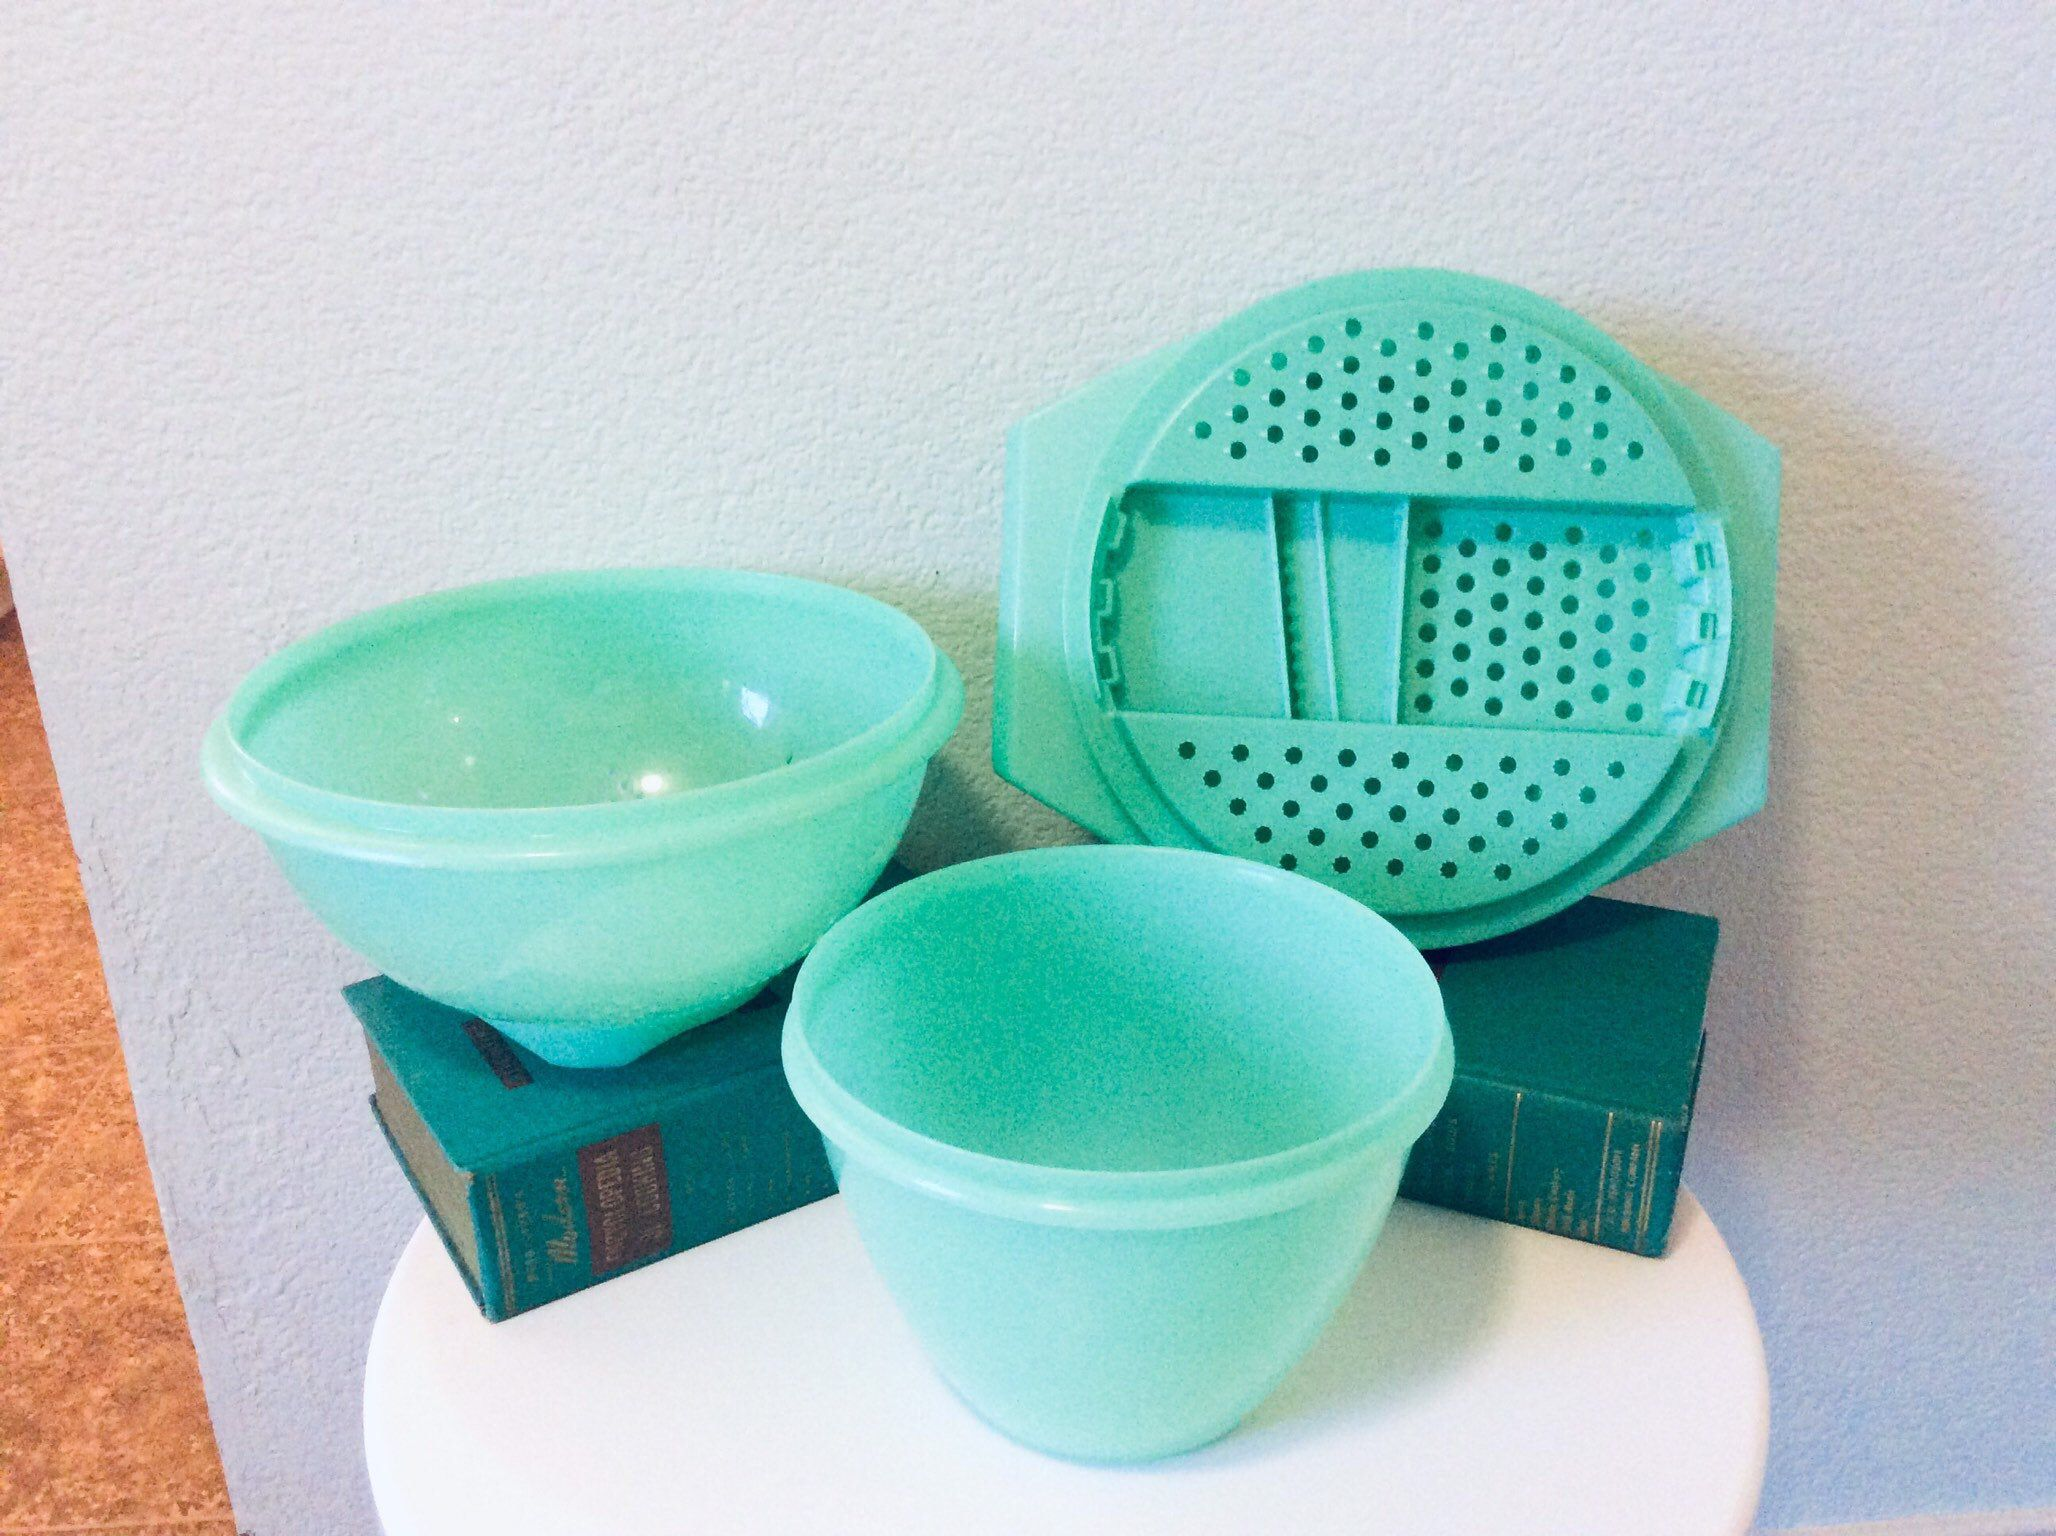 Vintage Mint Green Tupperware Set Colander Strainer Cheese Grater With Lid And Bowl Retro Tupperware Containers Bowls Turquoise Pastel 50s In 2020 Tupperware Vintage Tupperware Bowl